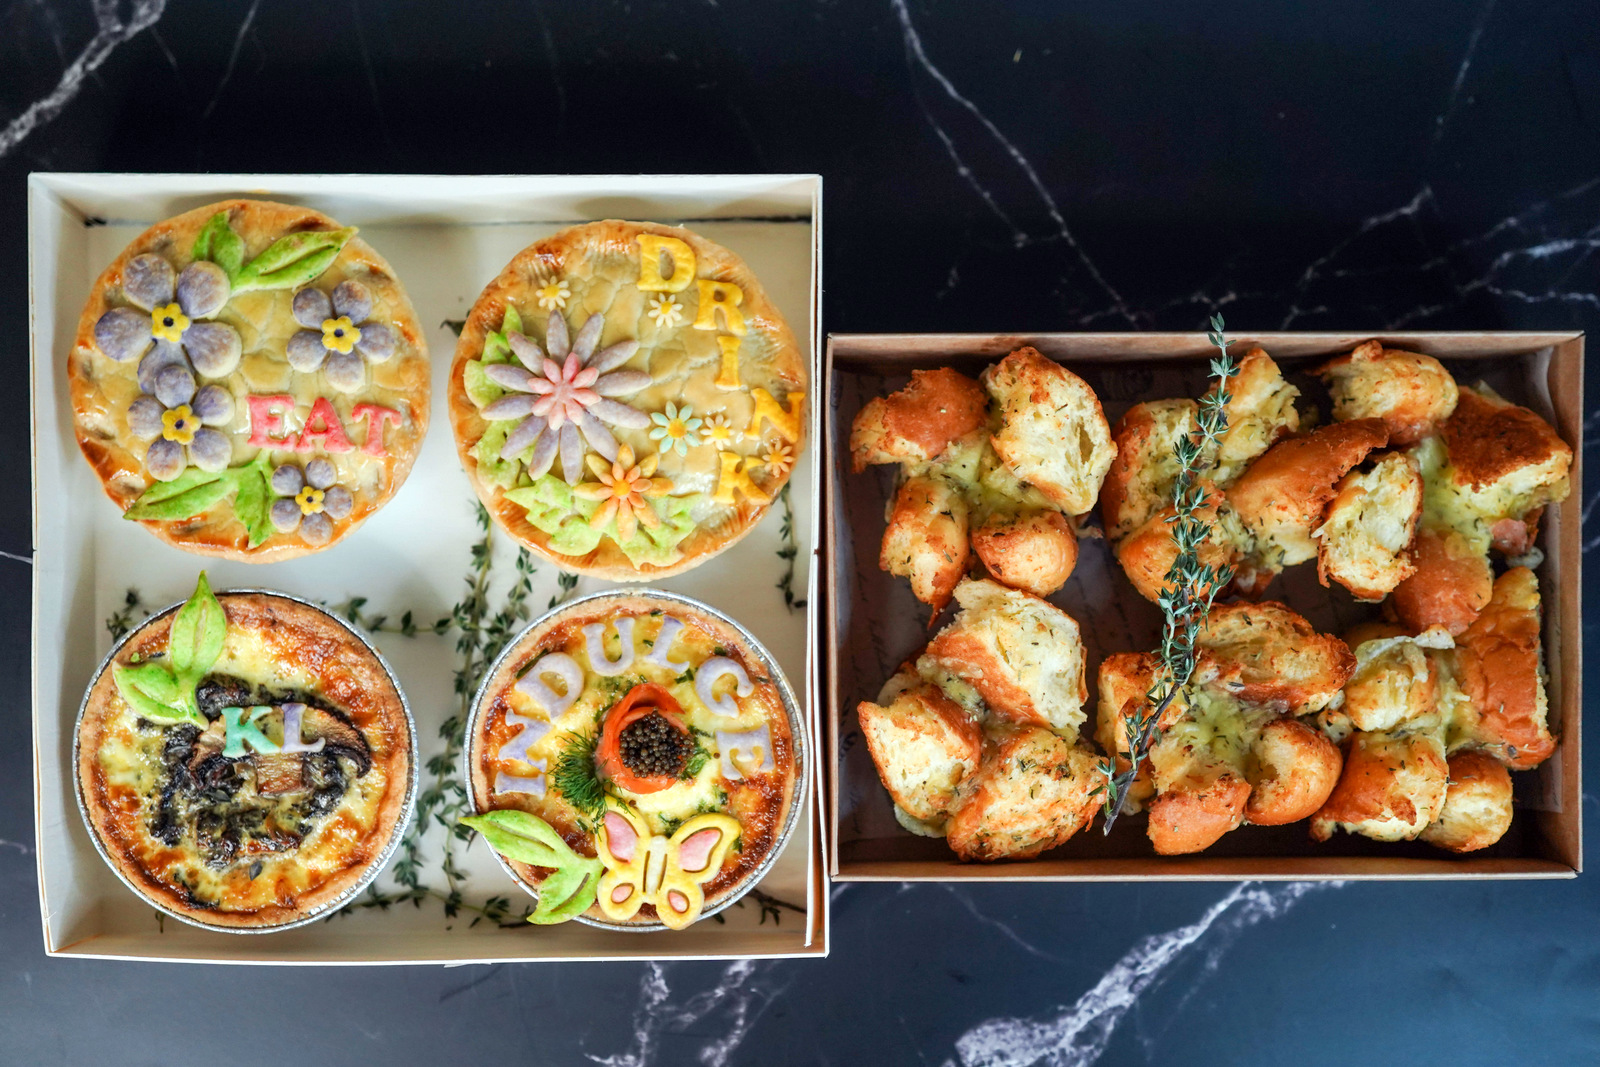 Indulge Family: Melt-in-the-mouth artisanal pies & pastries with designer crusts